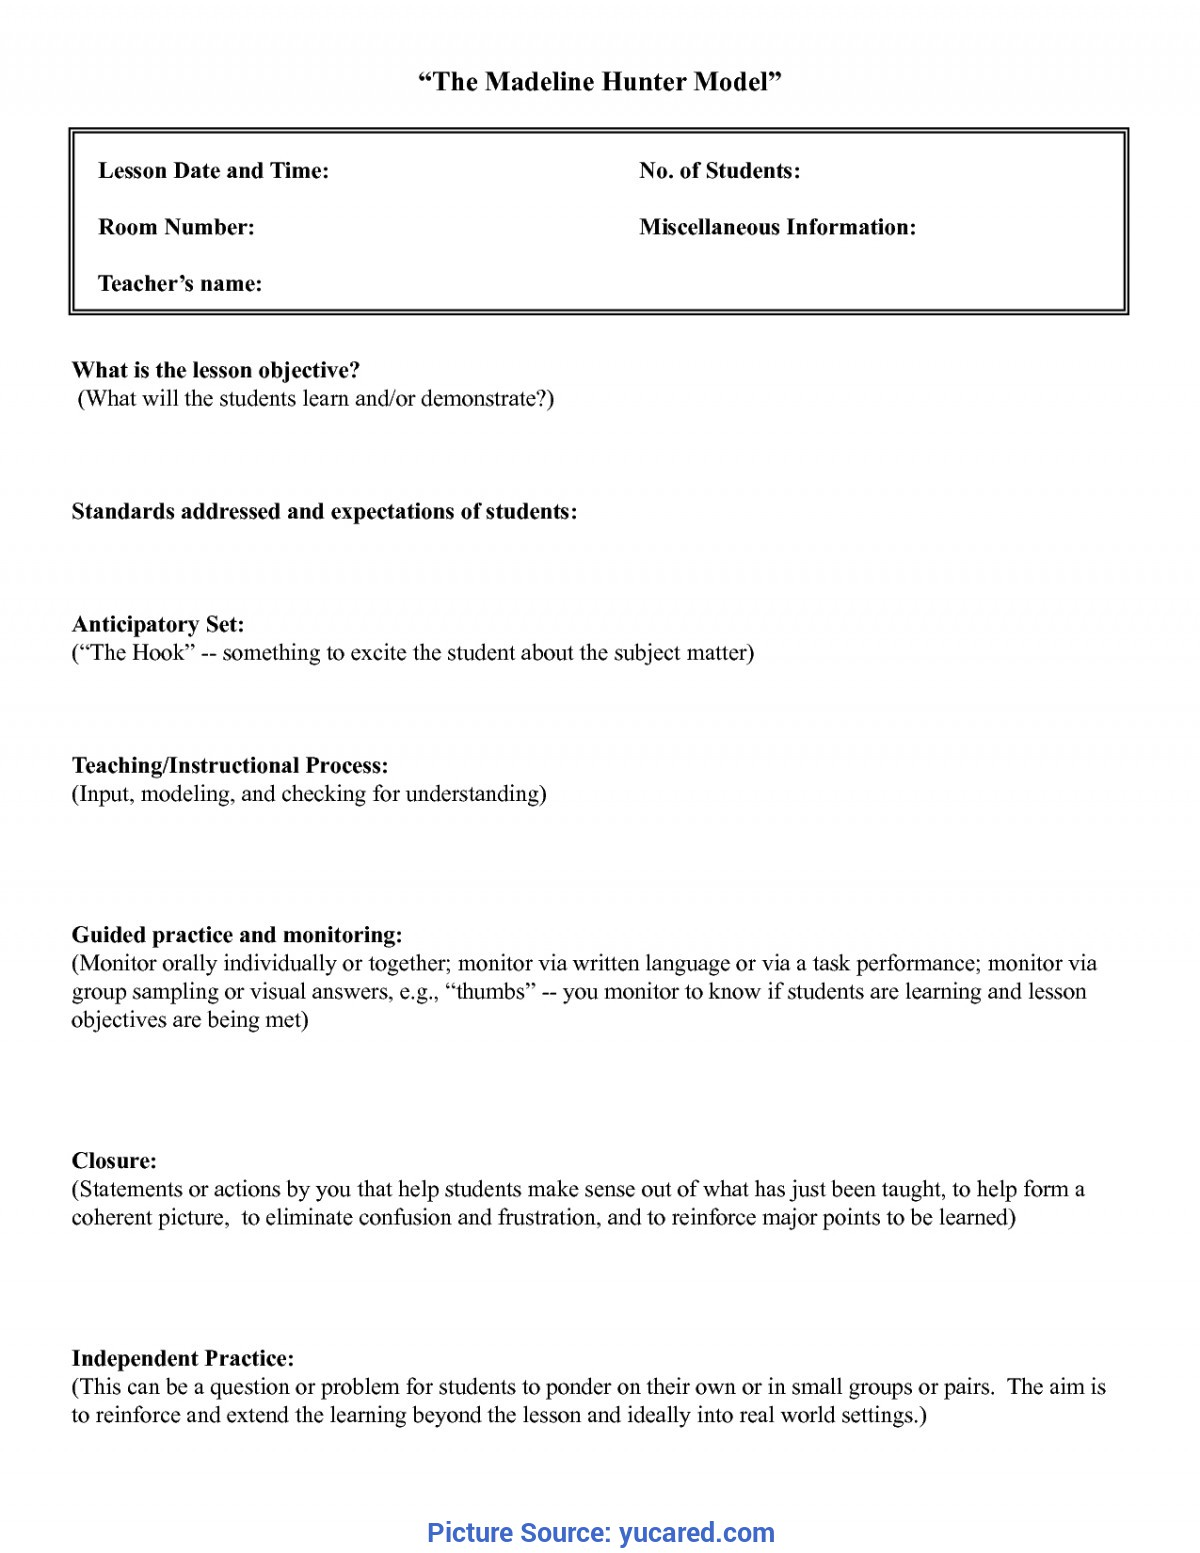 Interesting Written Lesson Plan Example Madeline Hunter Lesson Plan Template Word | Business Temp